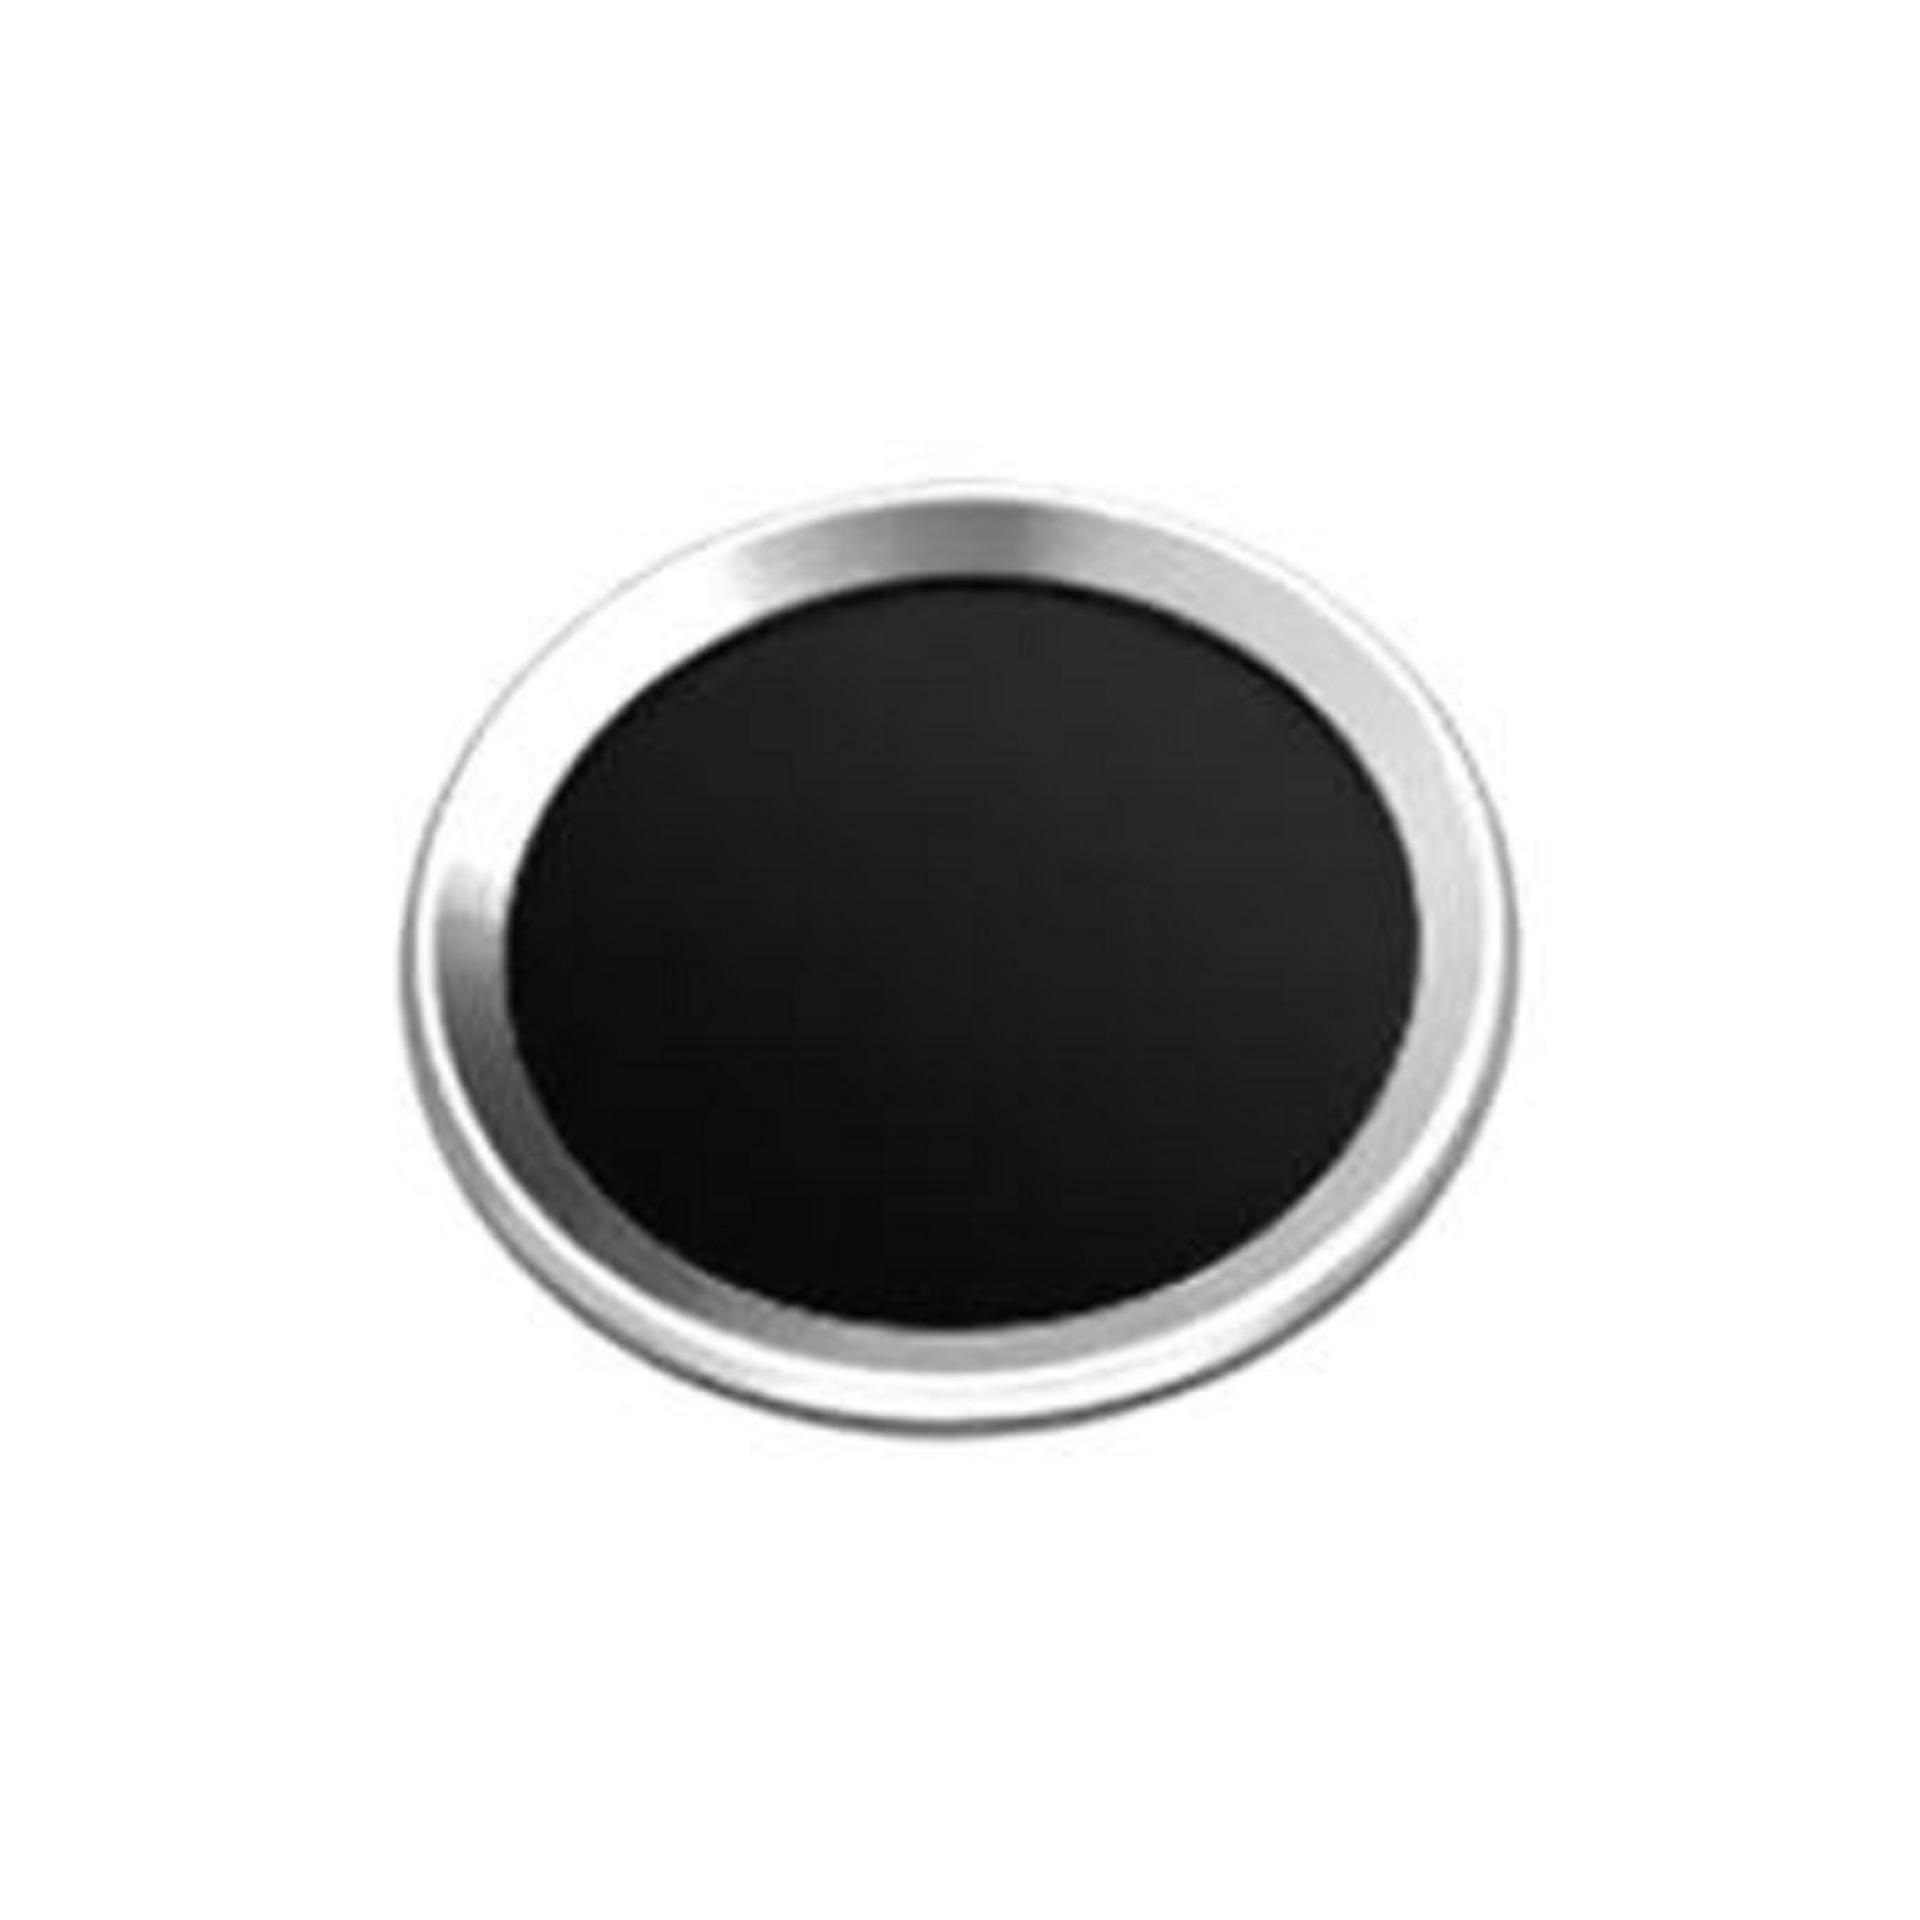 Bendoel Metal Aluminium Touch ID Home Button Sticker for Apple iPhone iPad iPod Mini Air 1 / 2 / 3 / 4 / 5 / 6 / 7 / 8 / + Plus - Hitam List Silver